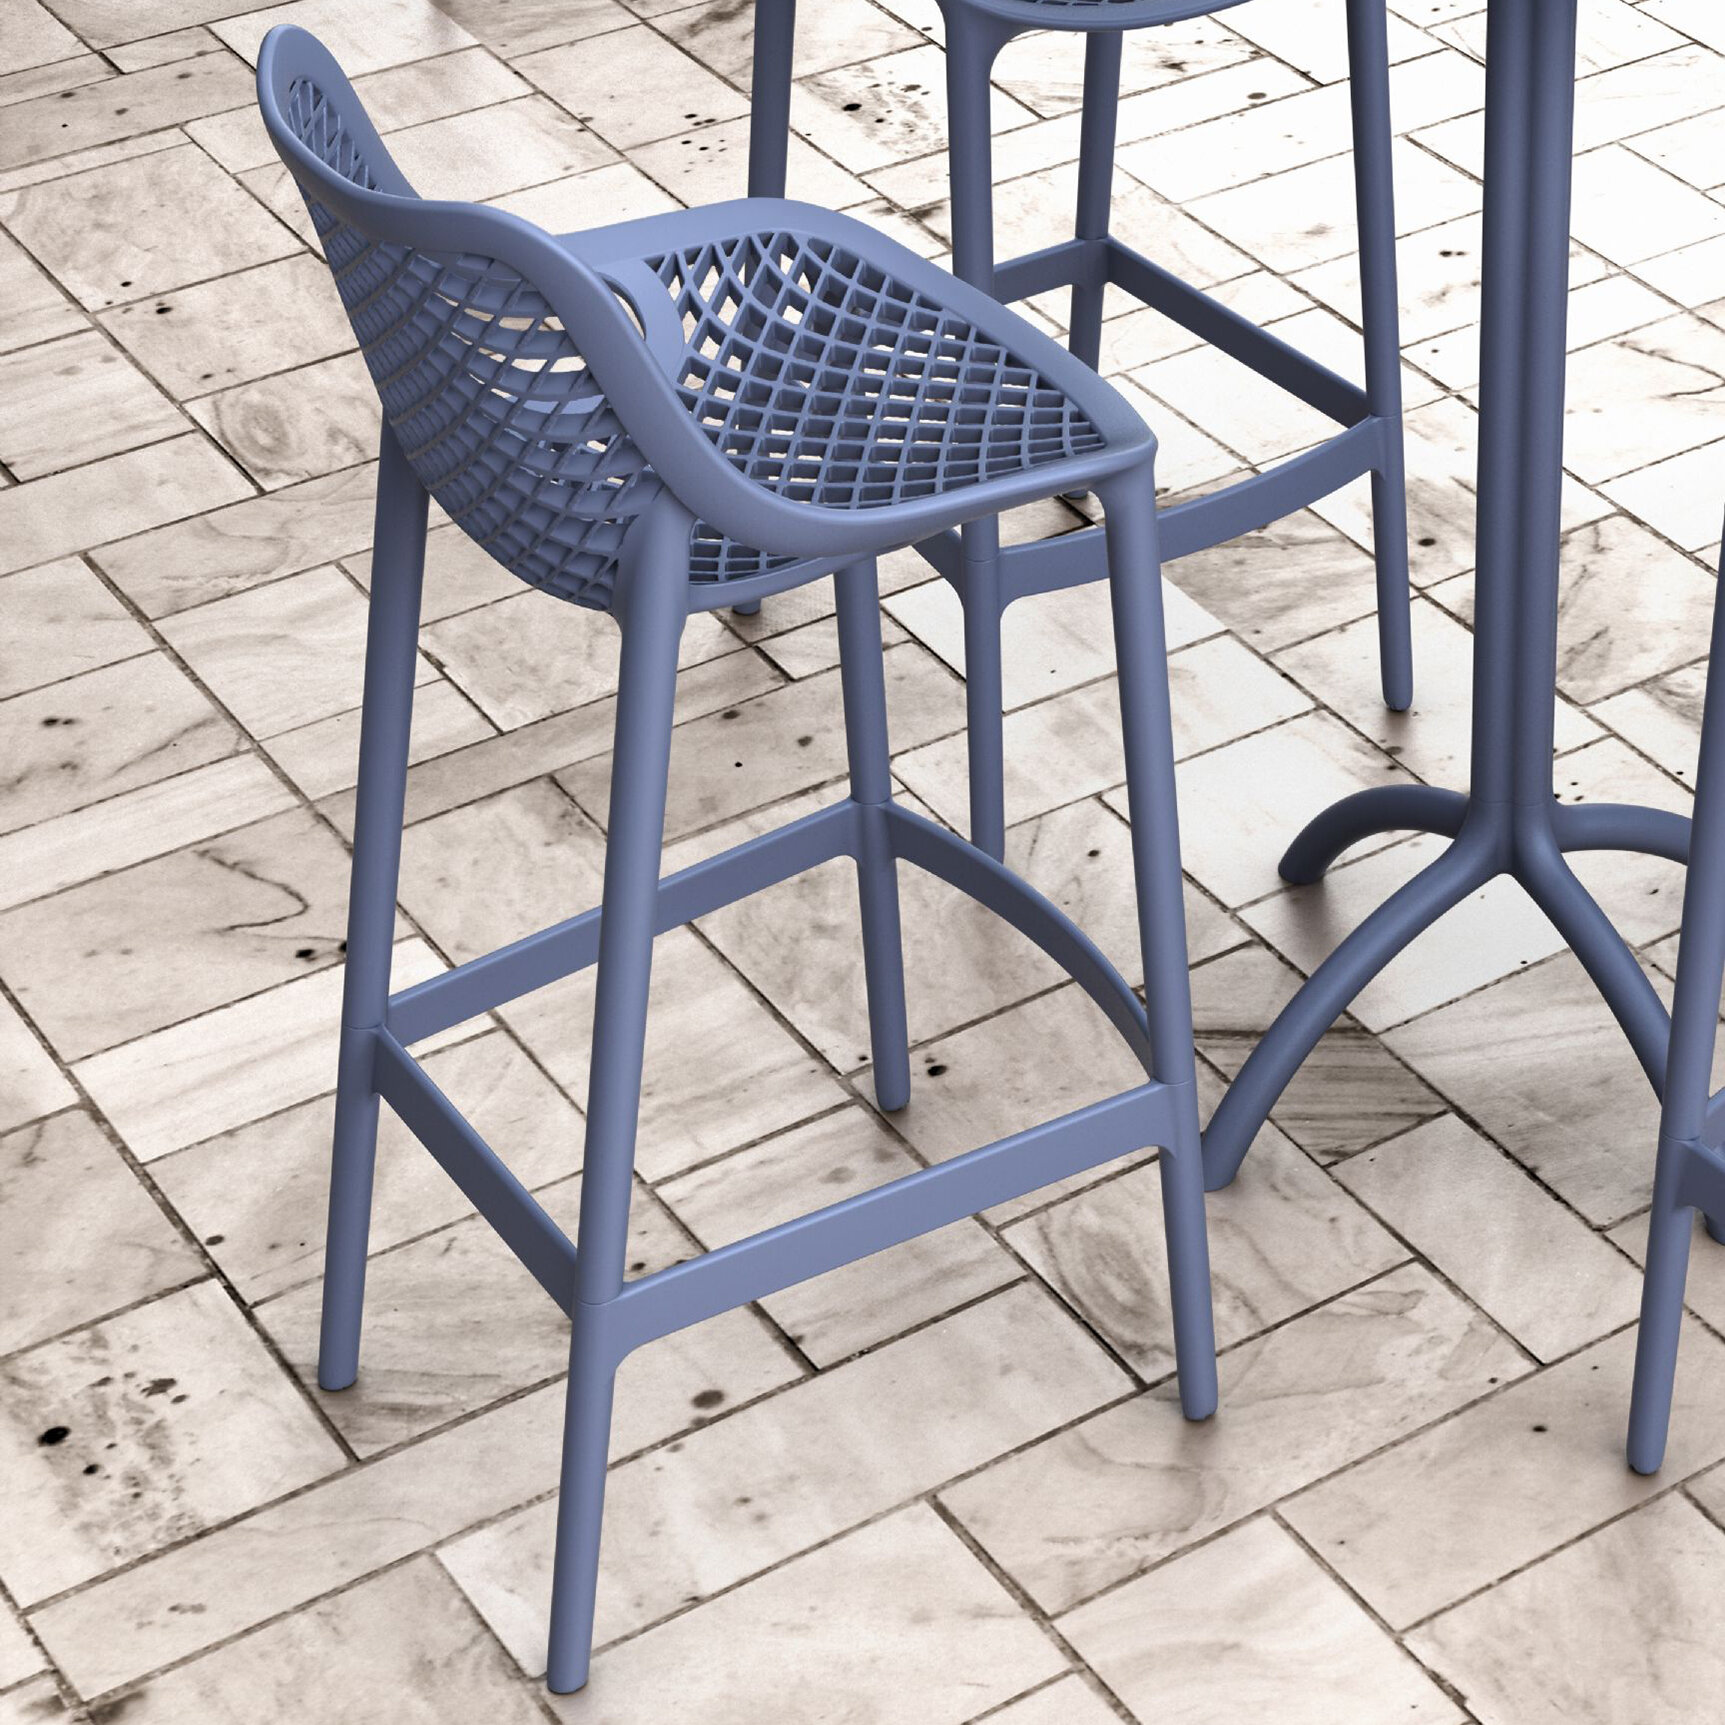 chairs style of onionskeen table top stools ideas cheap best stool patio outdoor bar and pub